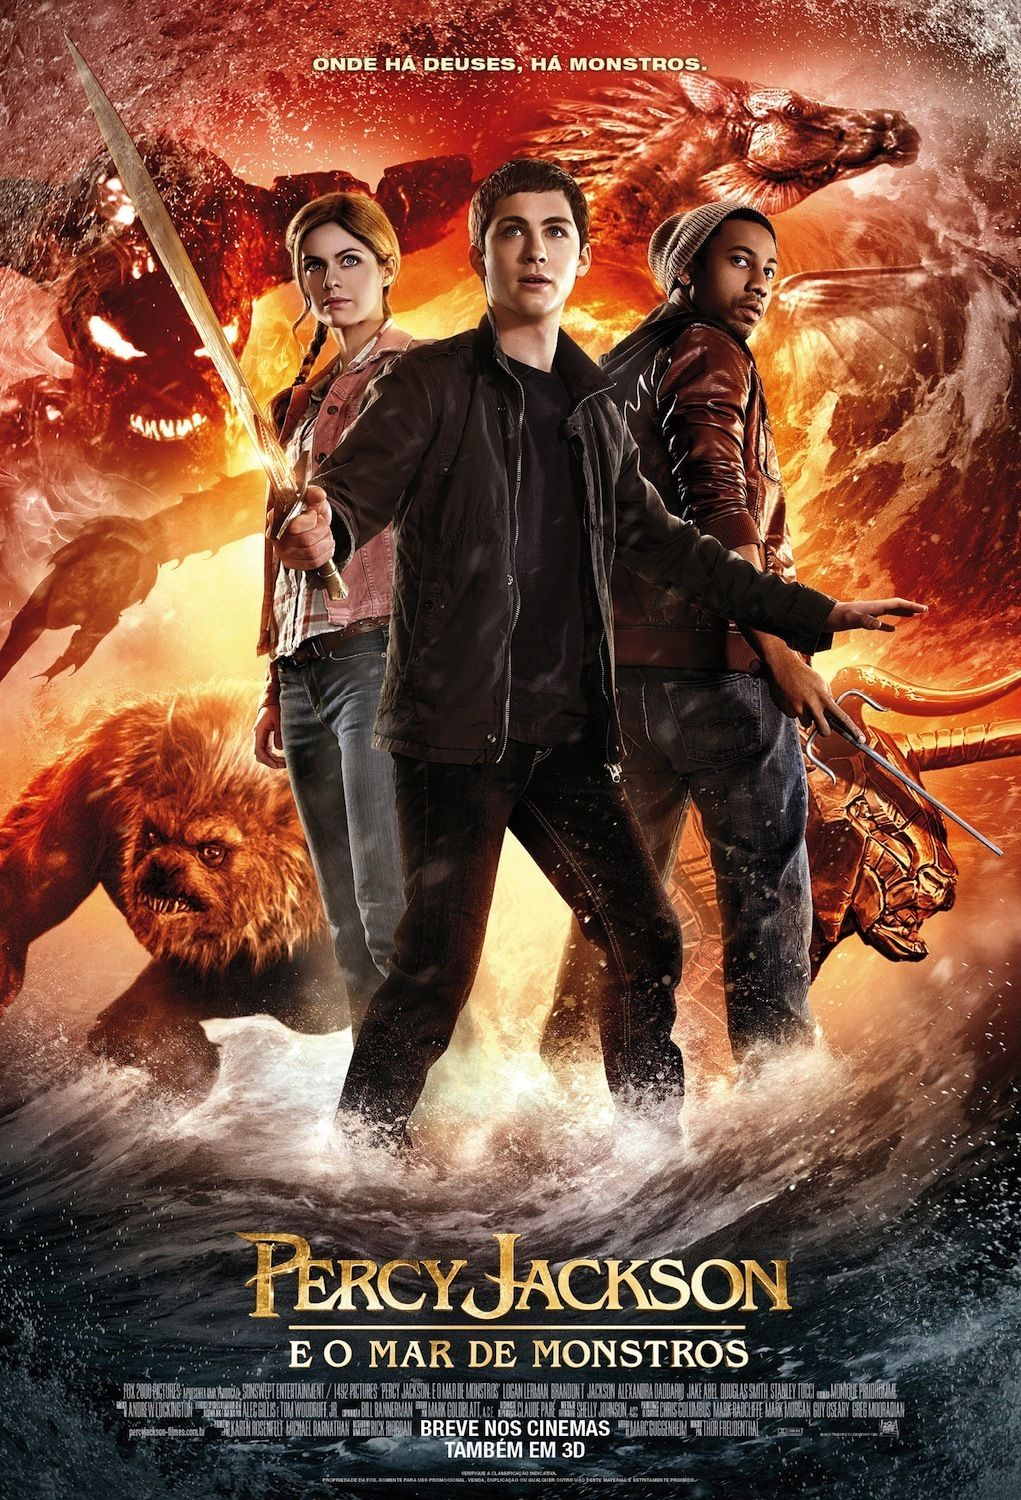 Percy Jackson E O Mar De Monstros O Mar De Monstros Percy